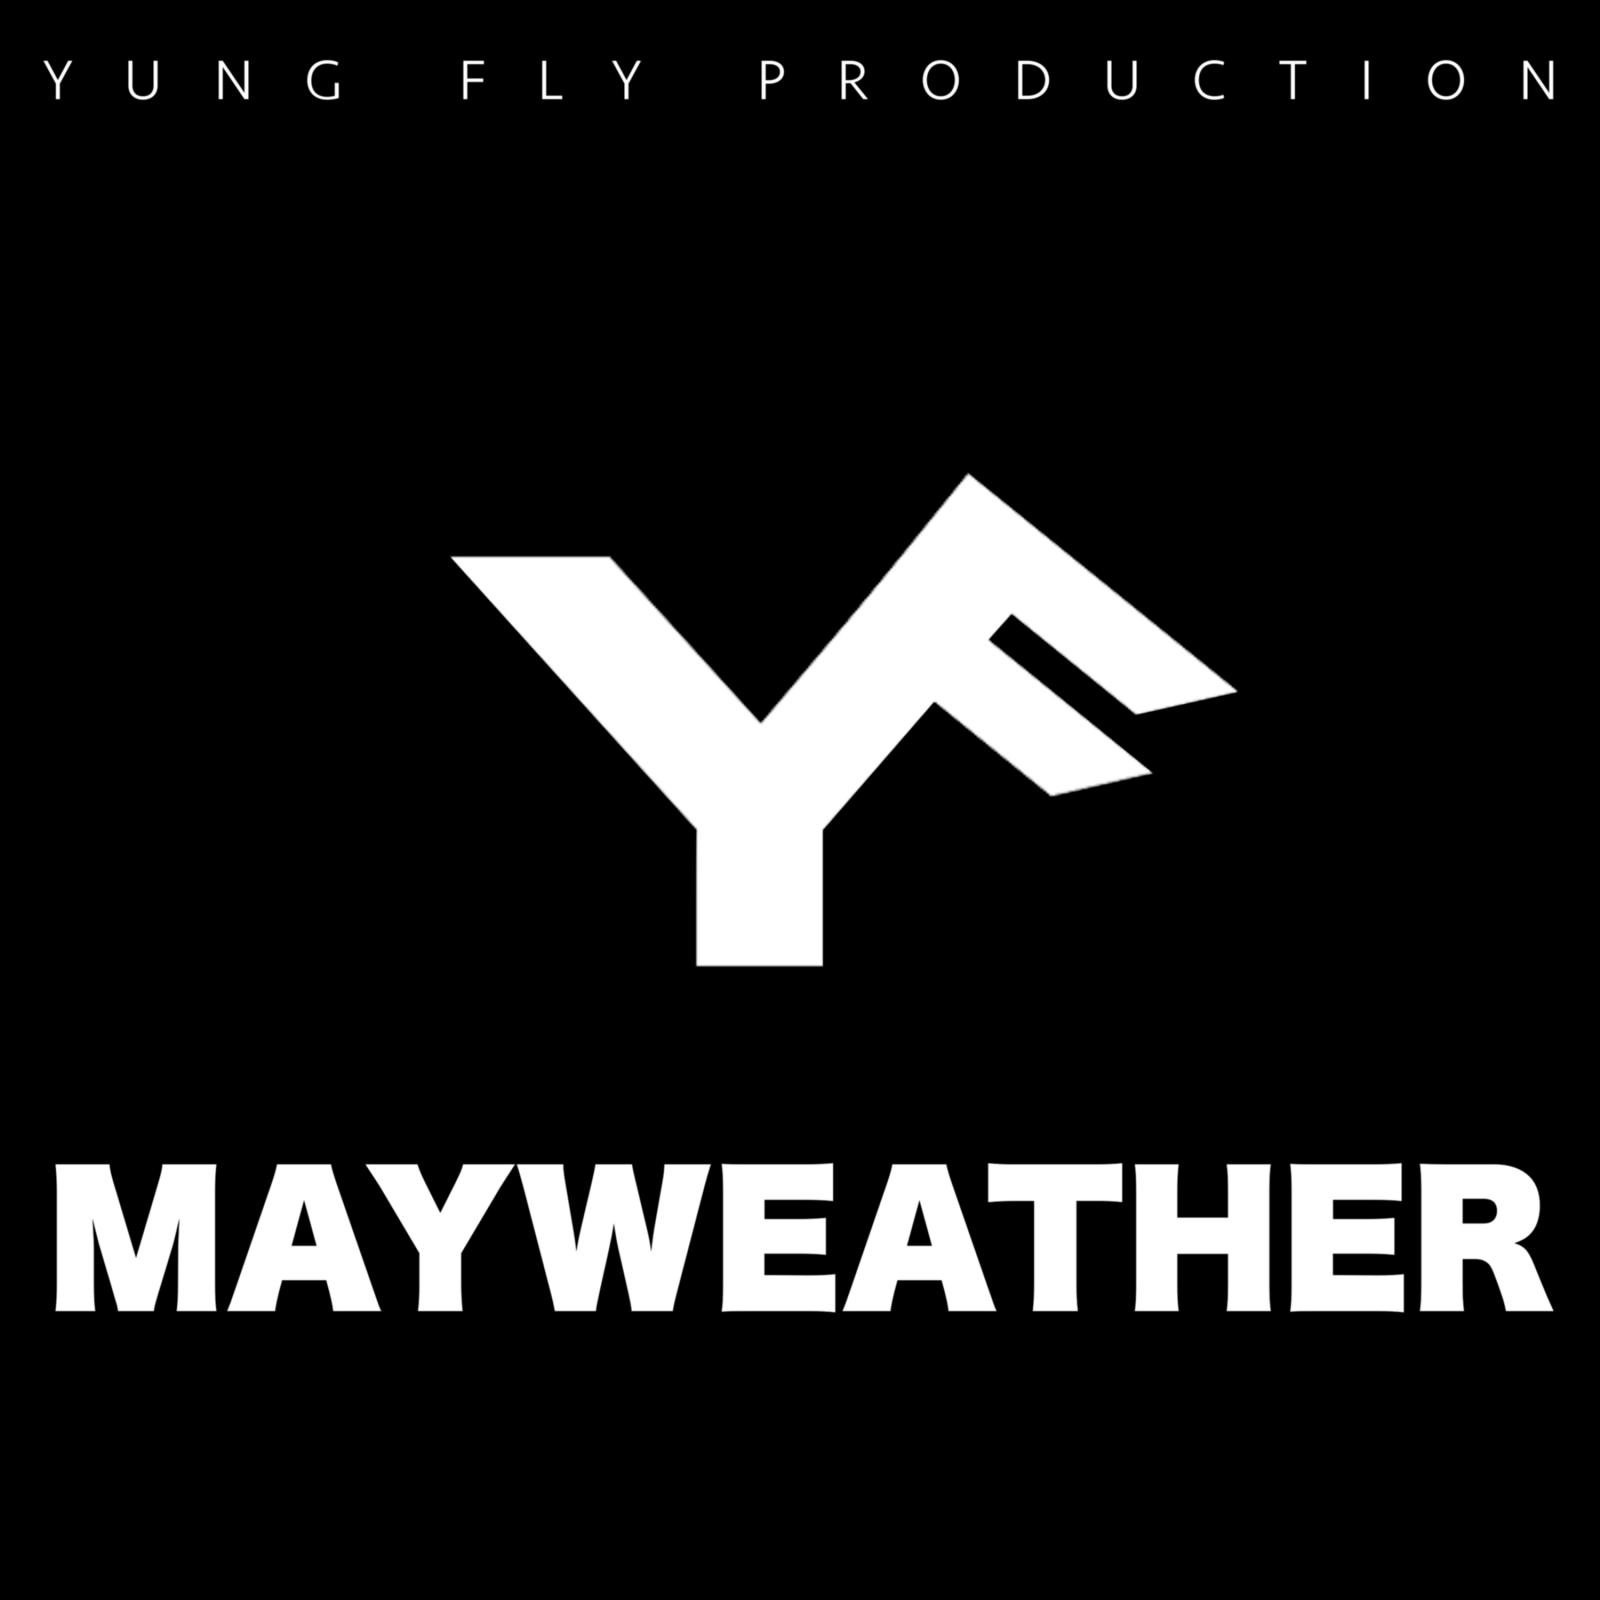 Upcoming: Yung Fly - Mayweather